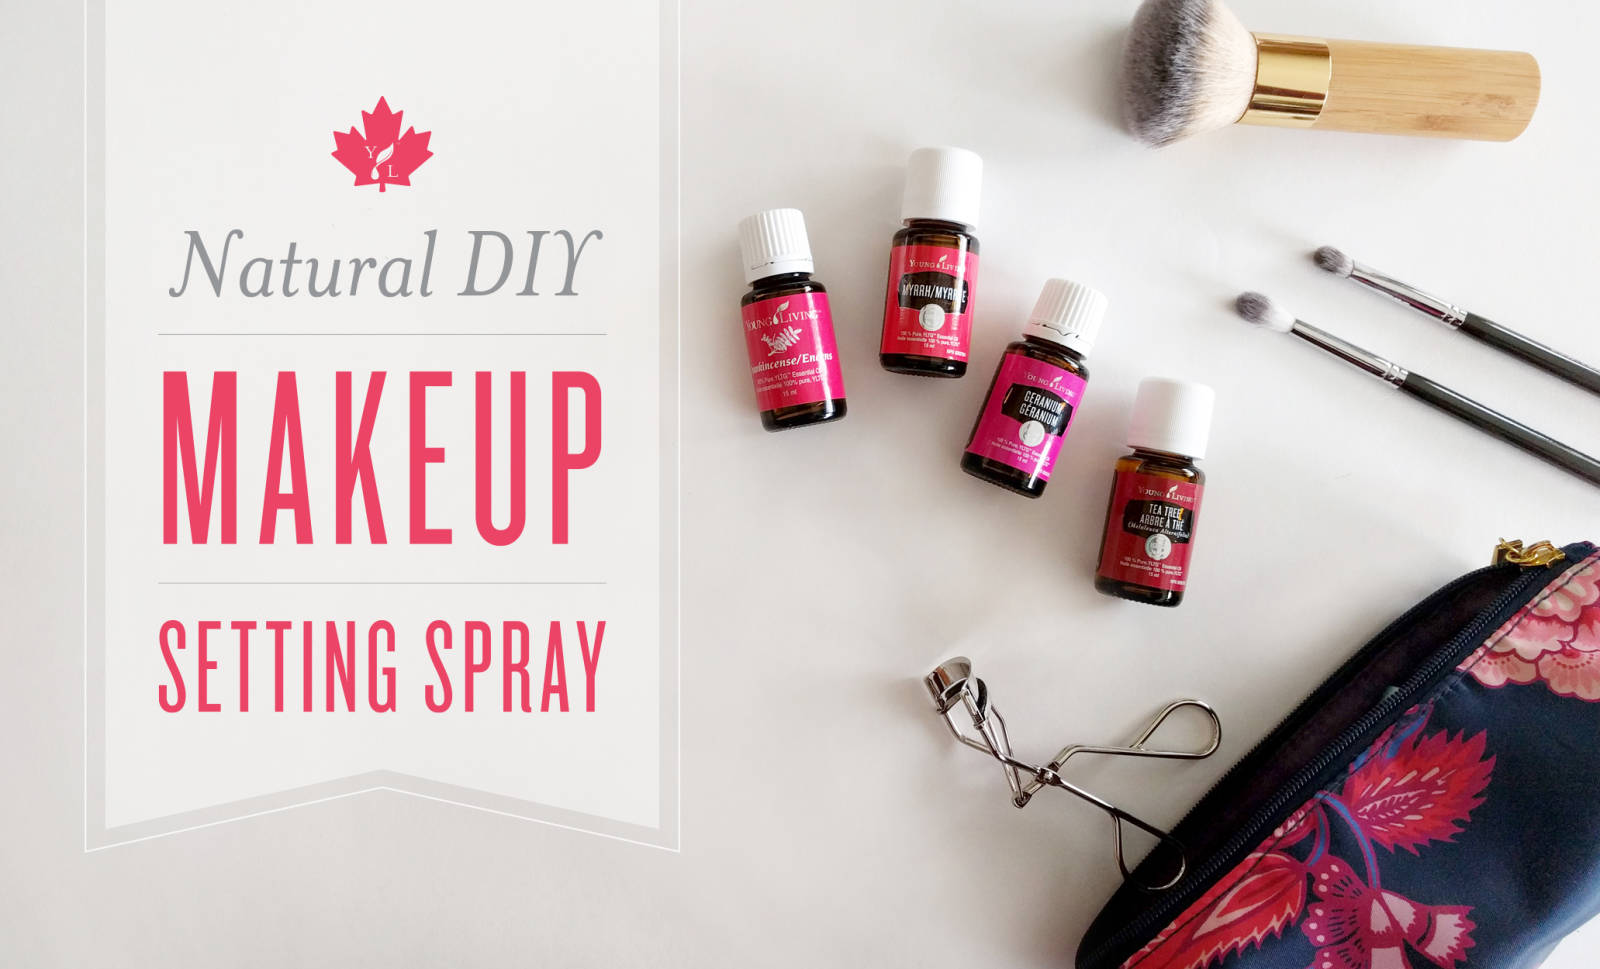 Natural DIY Makeup Setting Spray